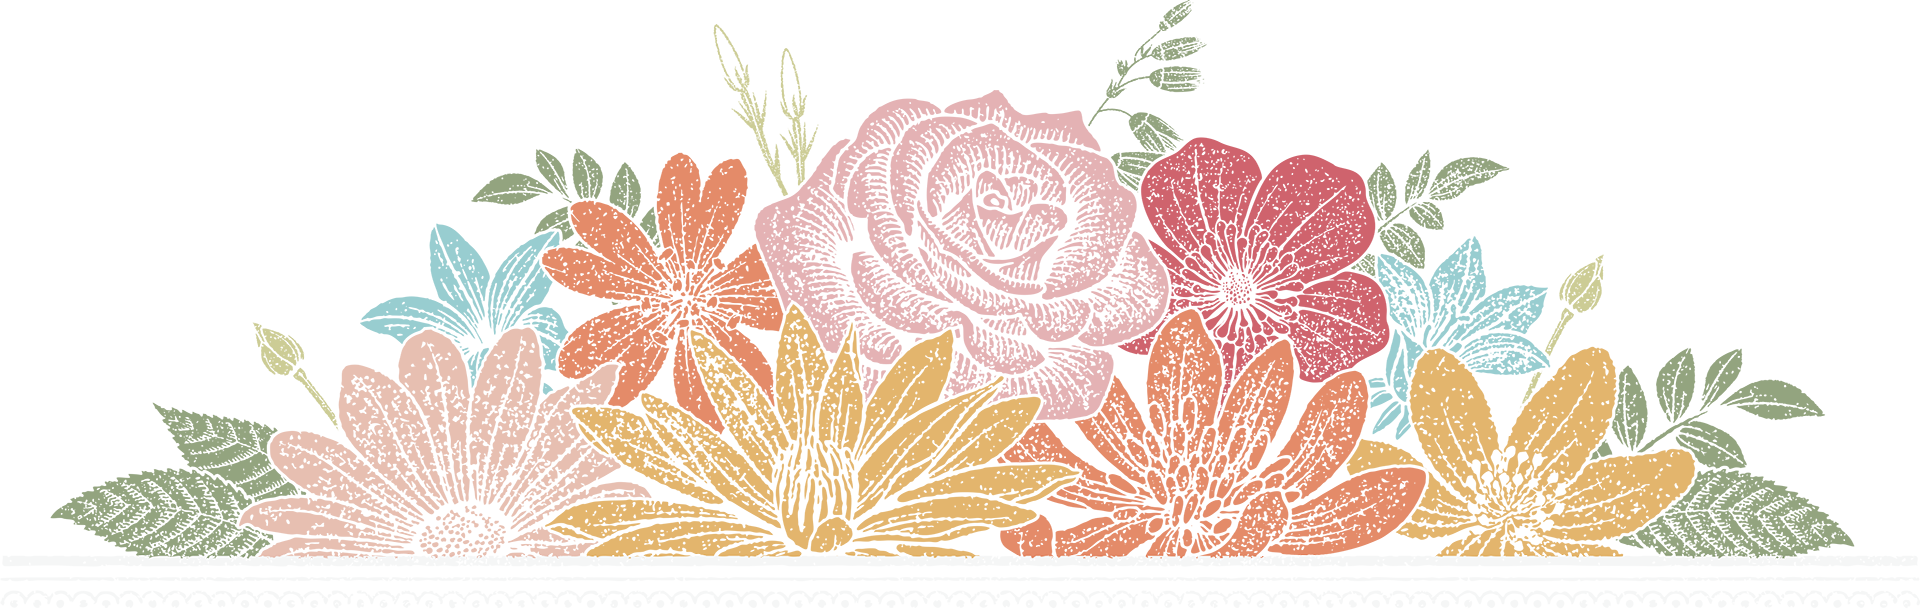 chalk-flowers.png